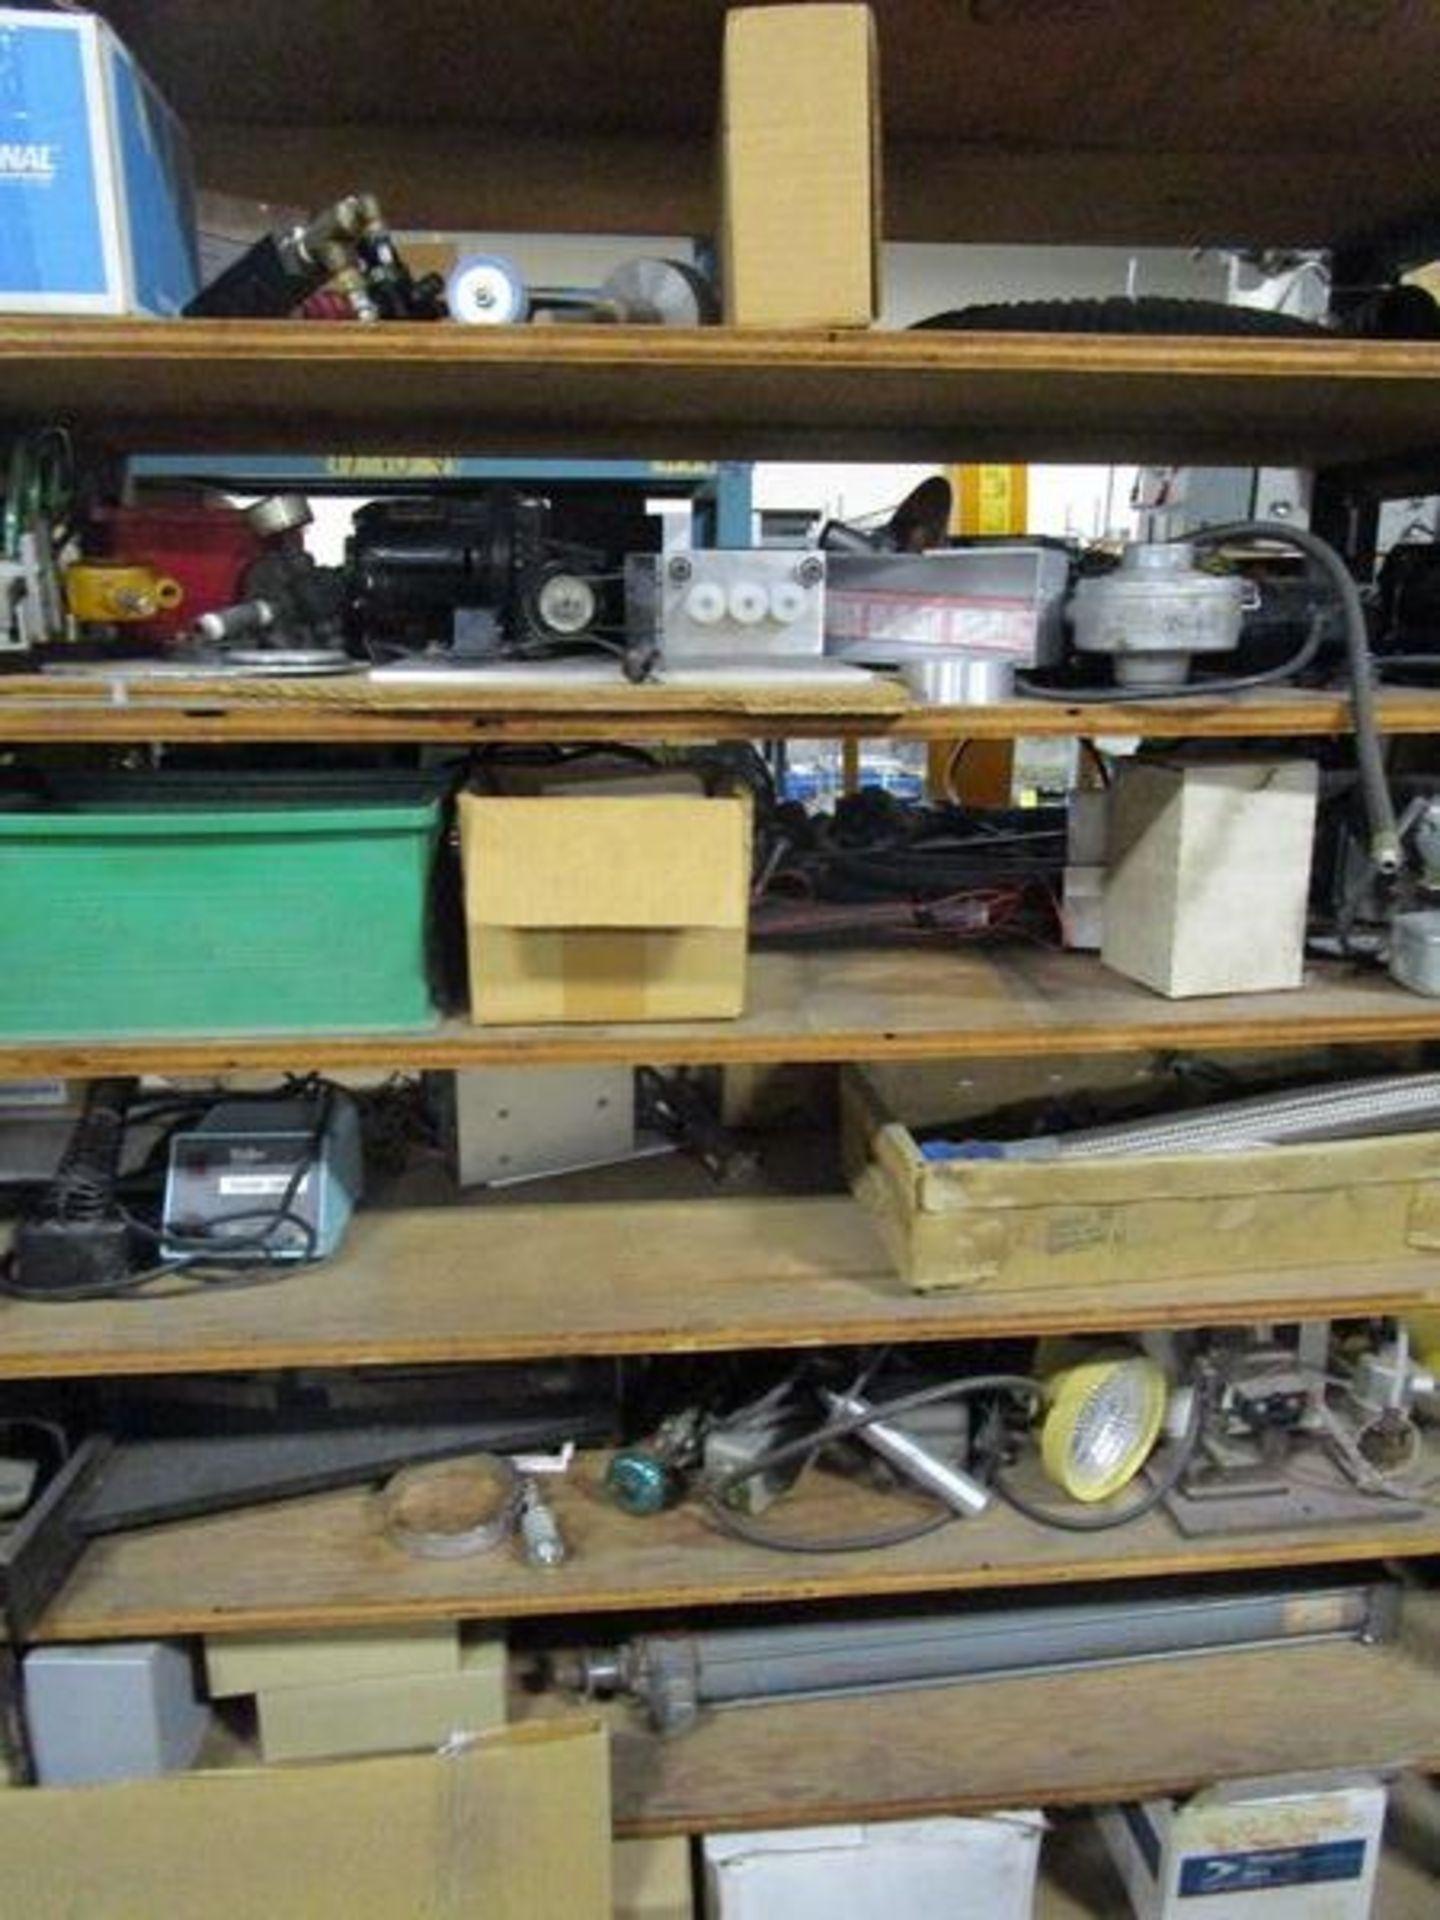 Lot Meters, Electrical Supplies, Wire, Components, Pins, Gages, Solderer, Etc. in 4 Sections - Image 3 of 5